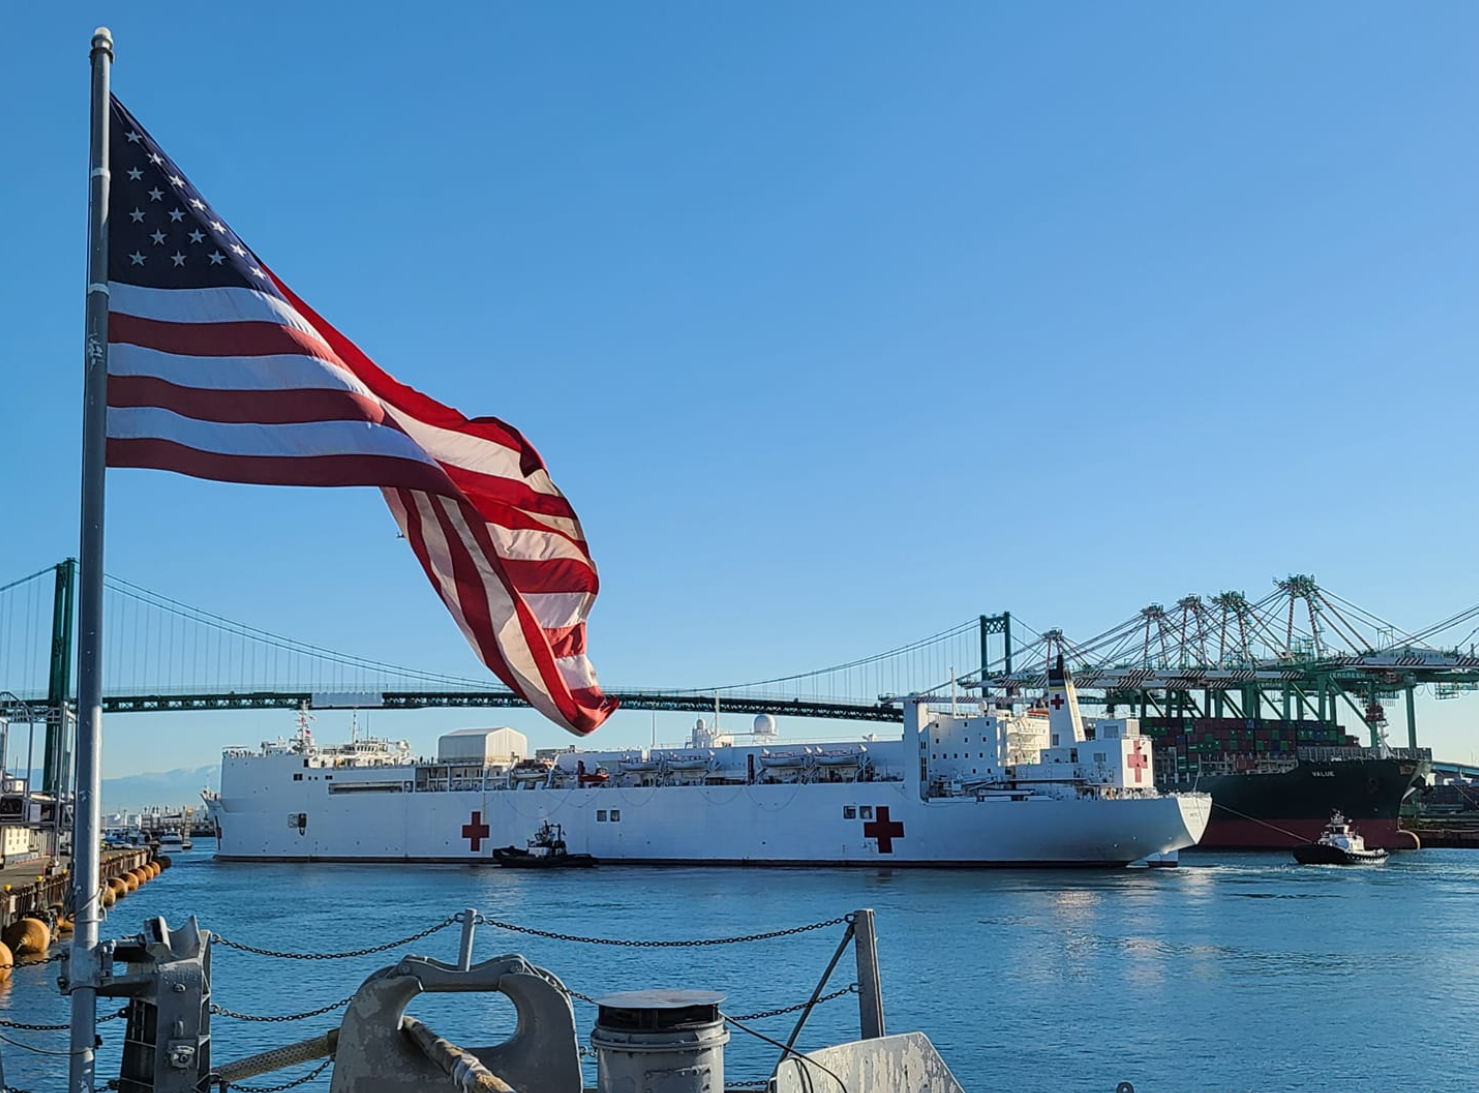 Video shows how COVID-19 positive patients are brought onto the USNS Comfort